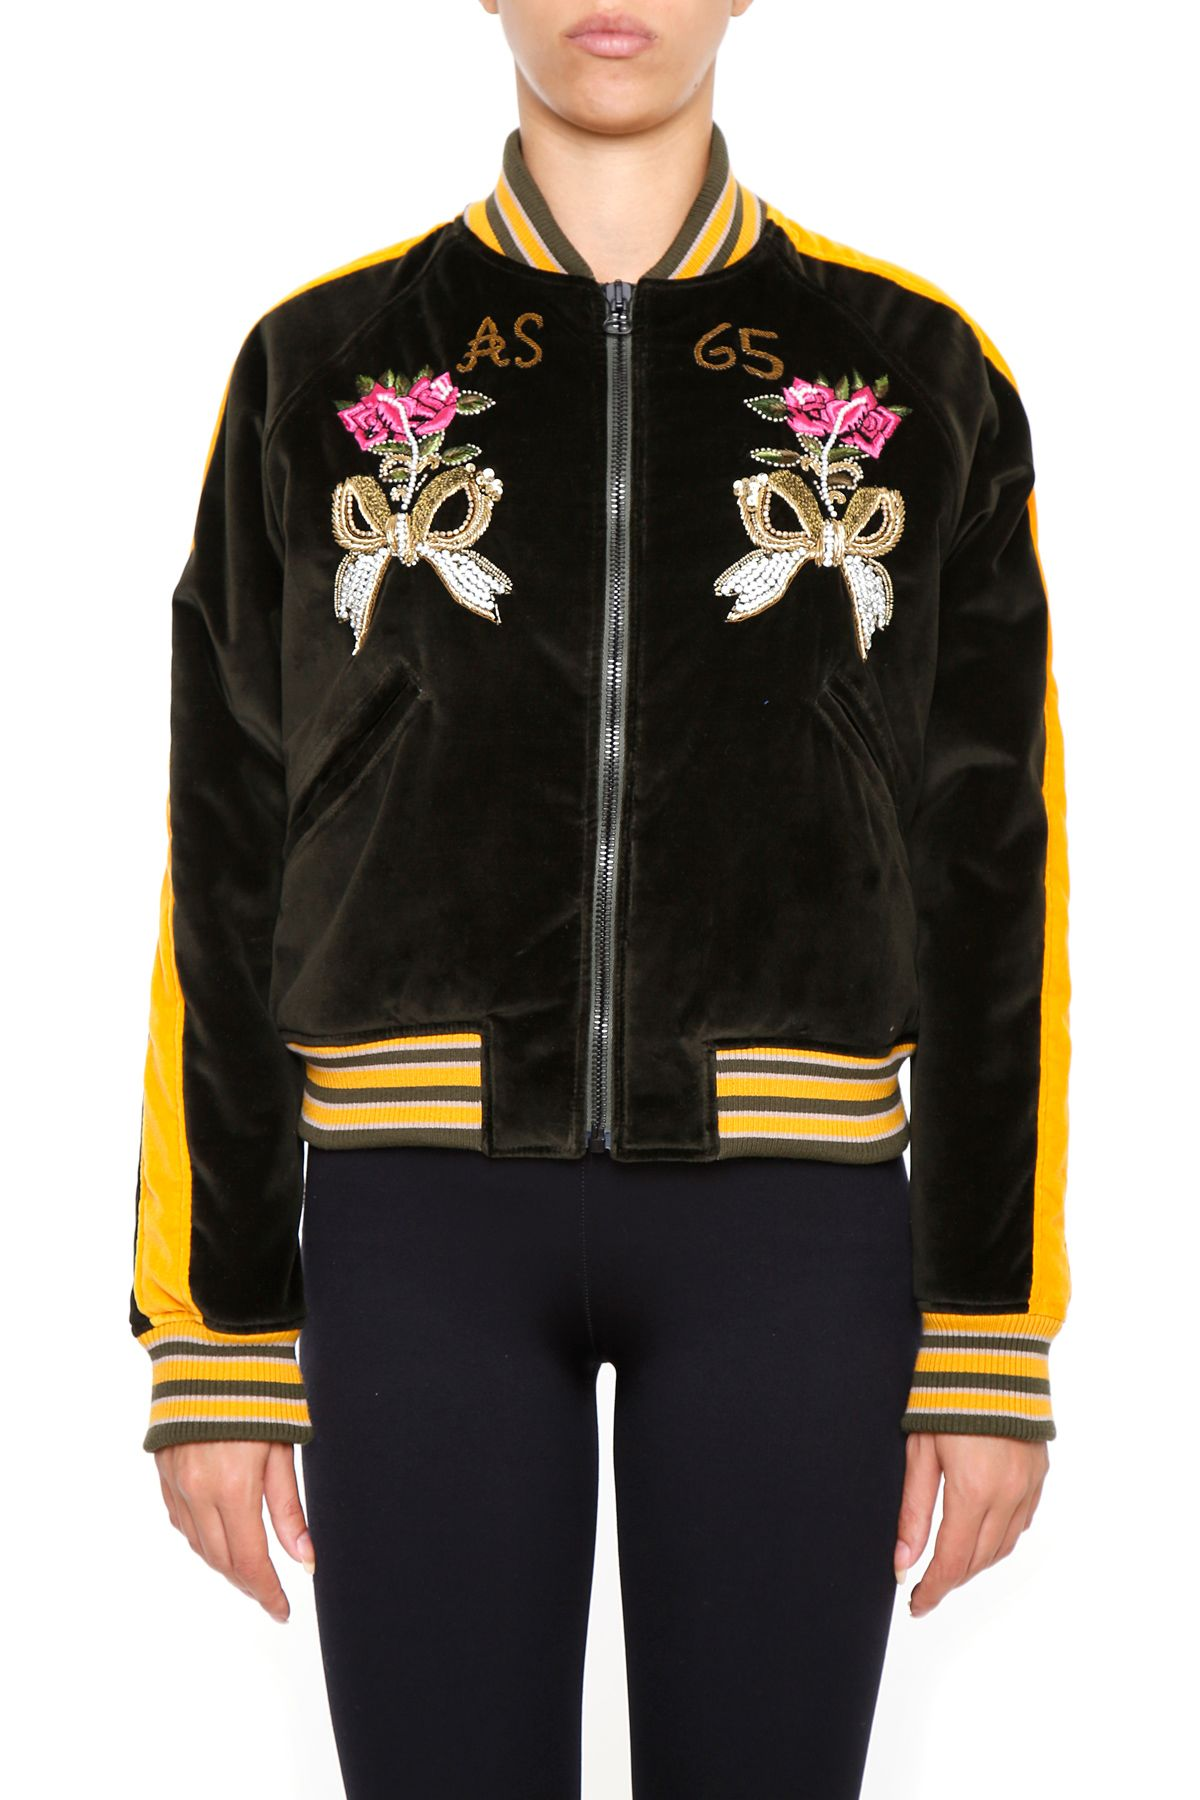 AS65 Bomber Jacket With Embroidered Panther And Flowers